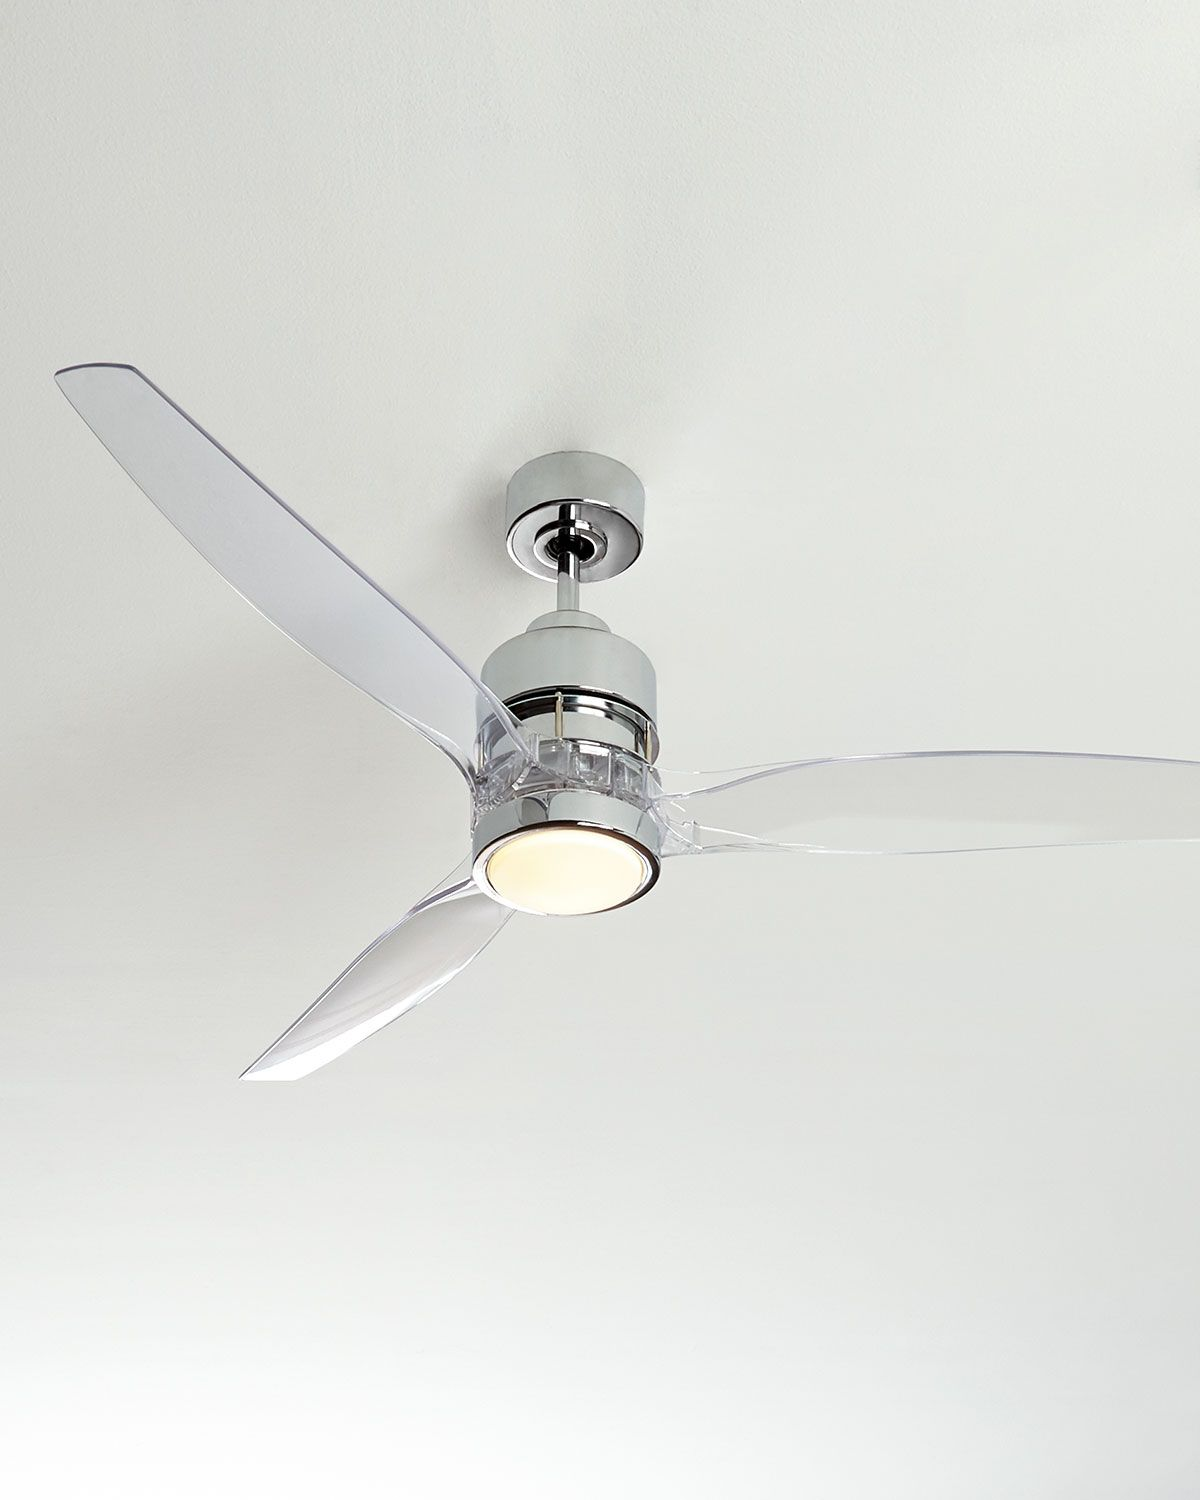 Sonet 52 acrylic ceiling fan ceiling fan ceilings and lights milo 52 acrylic ceiling fan mozeypictures